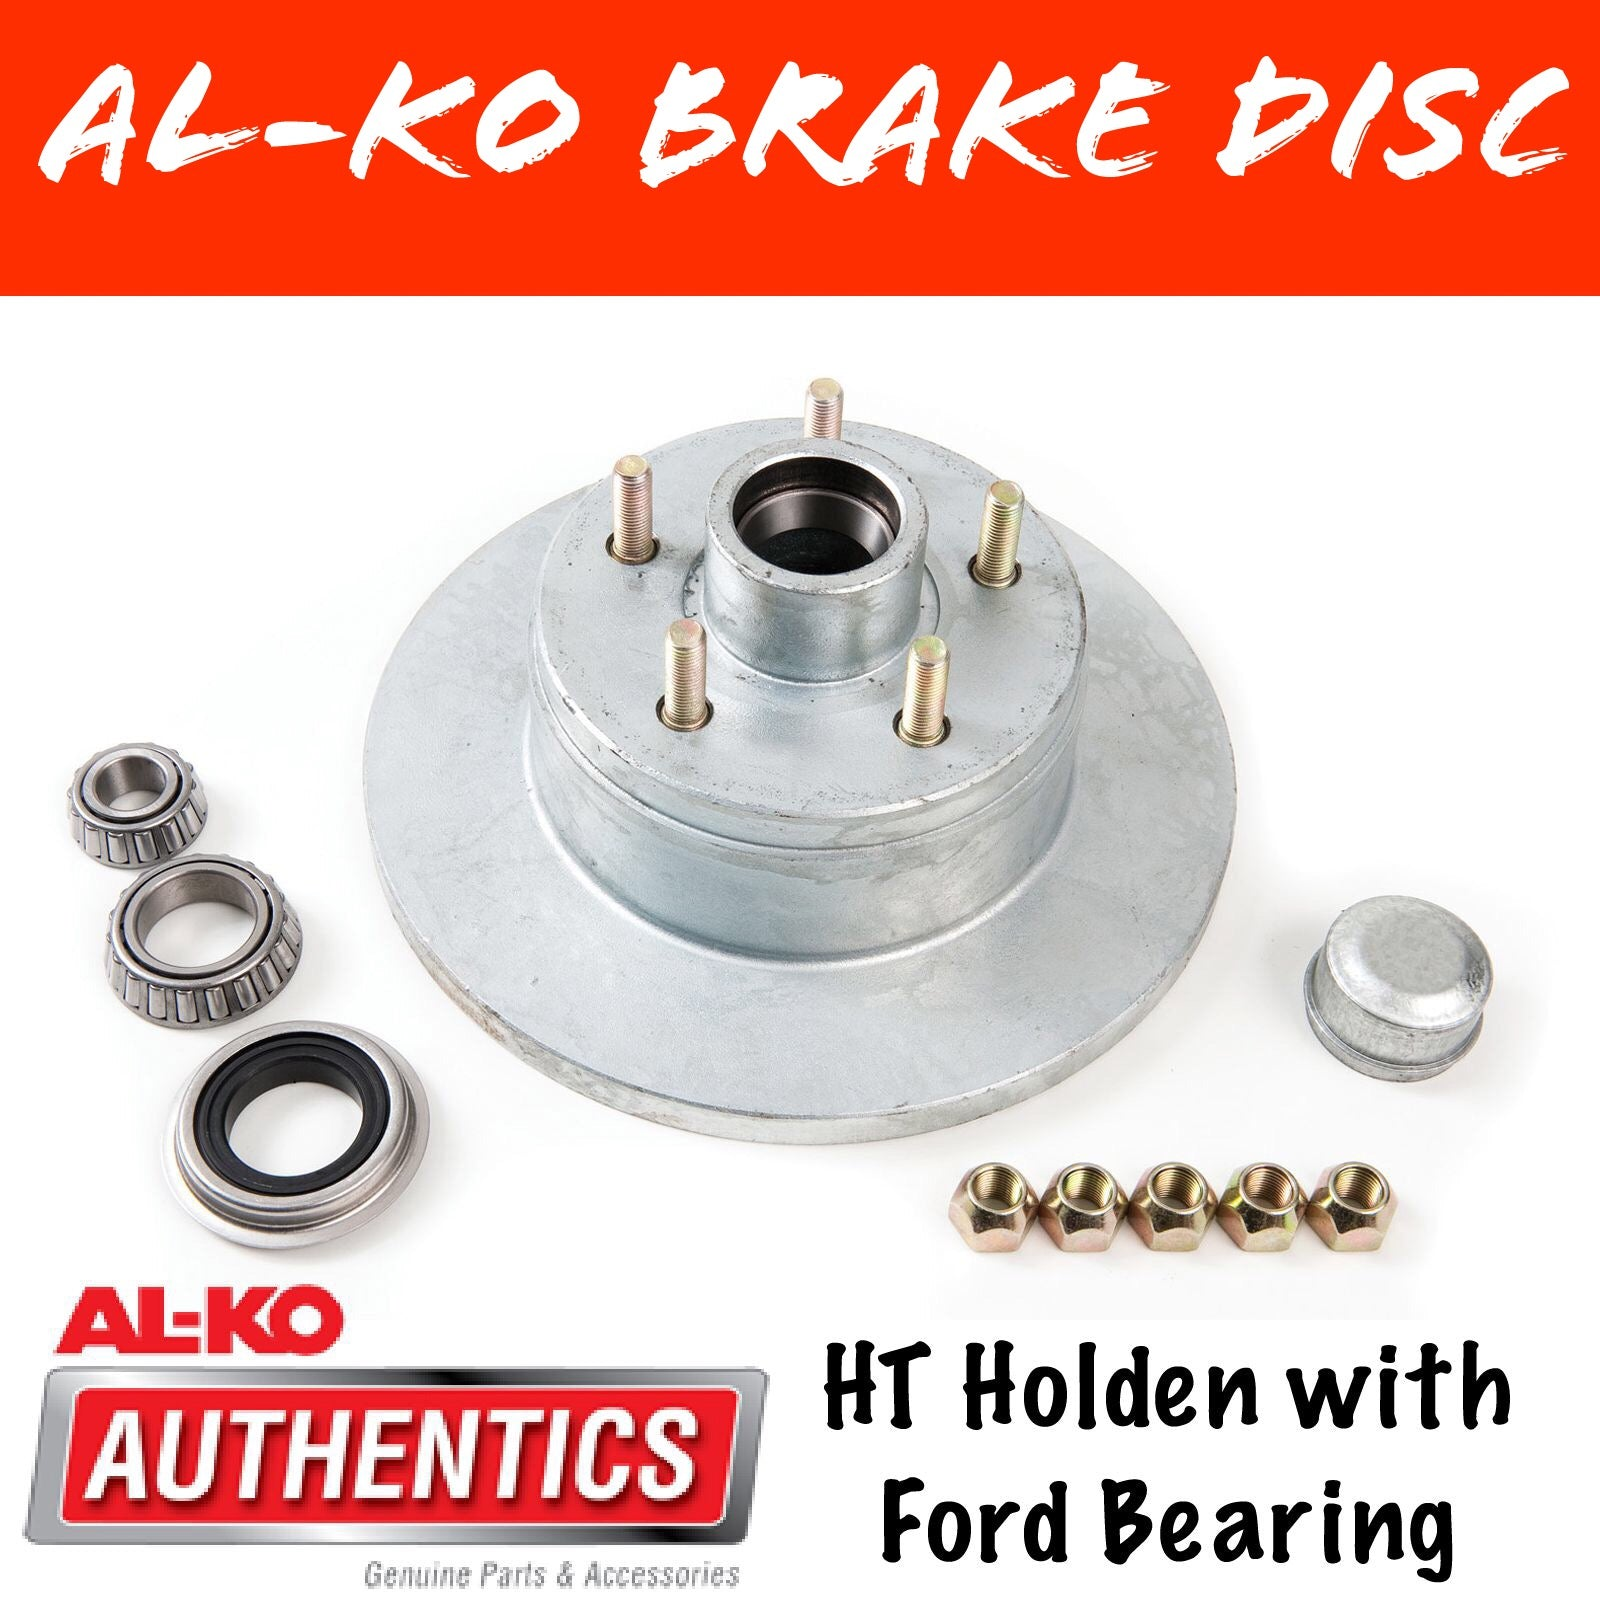 AL-KO HT Holden Gal Brake Disc with Ford Bearings